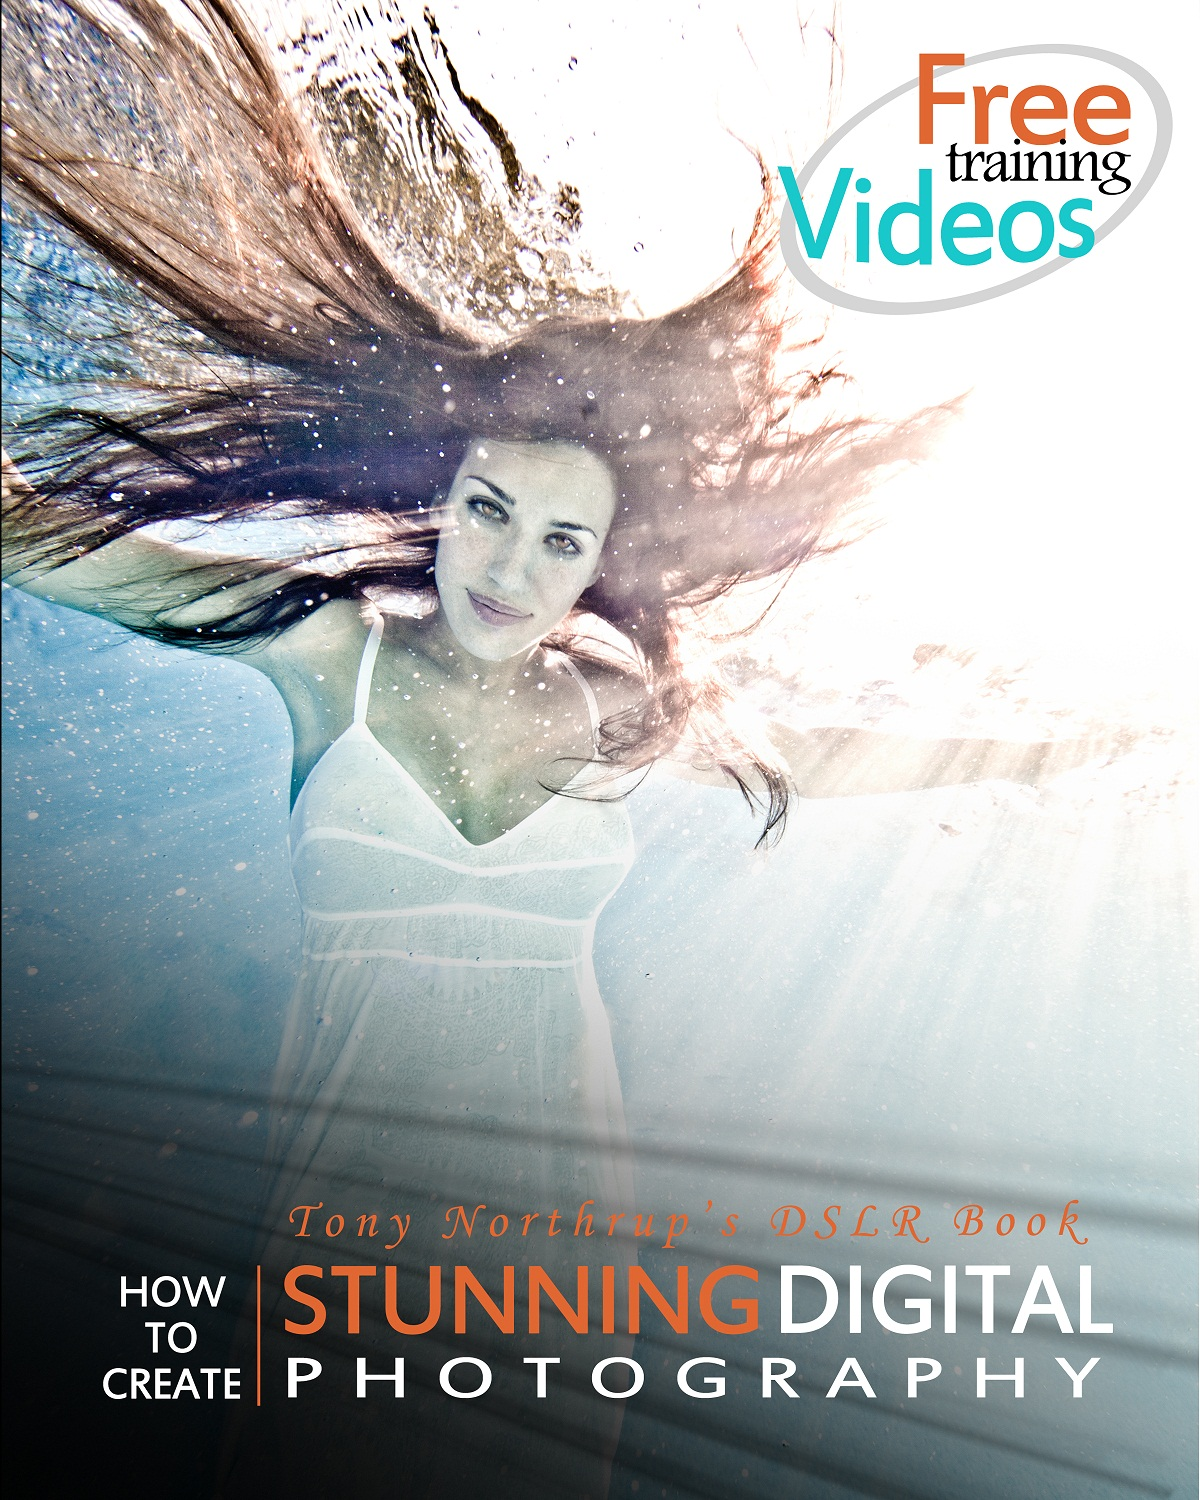 Digital Photography Book Cover : Stunning digital photography named book of the year